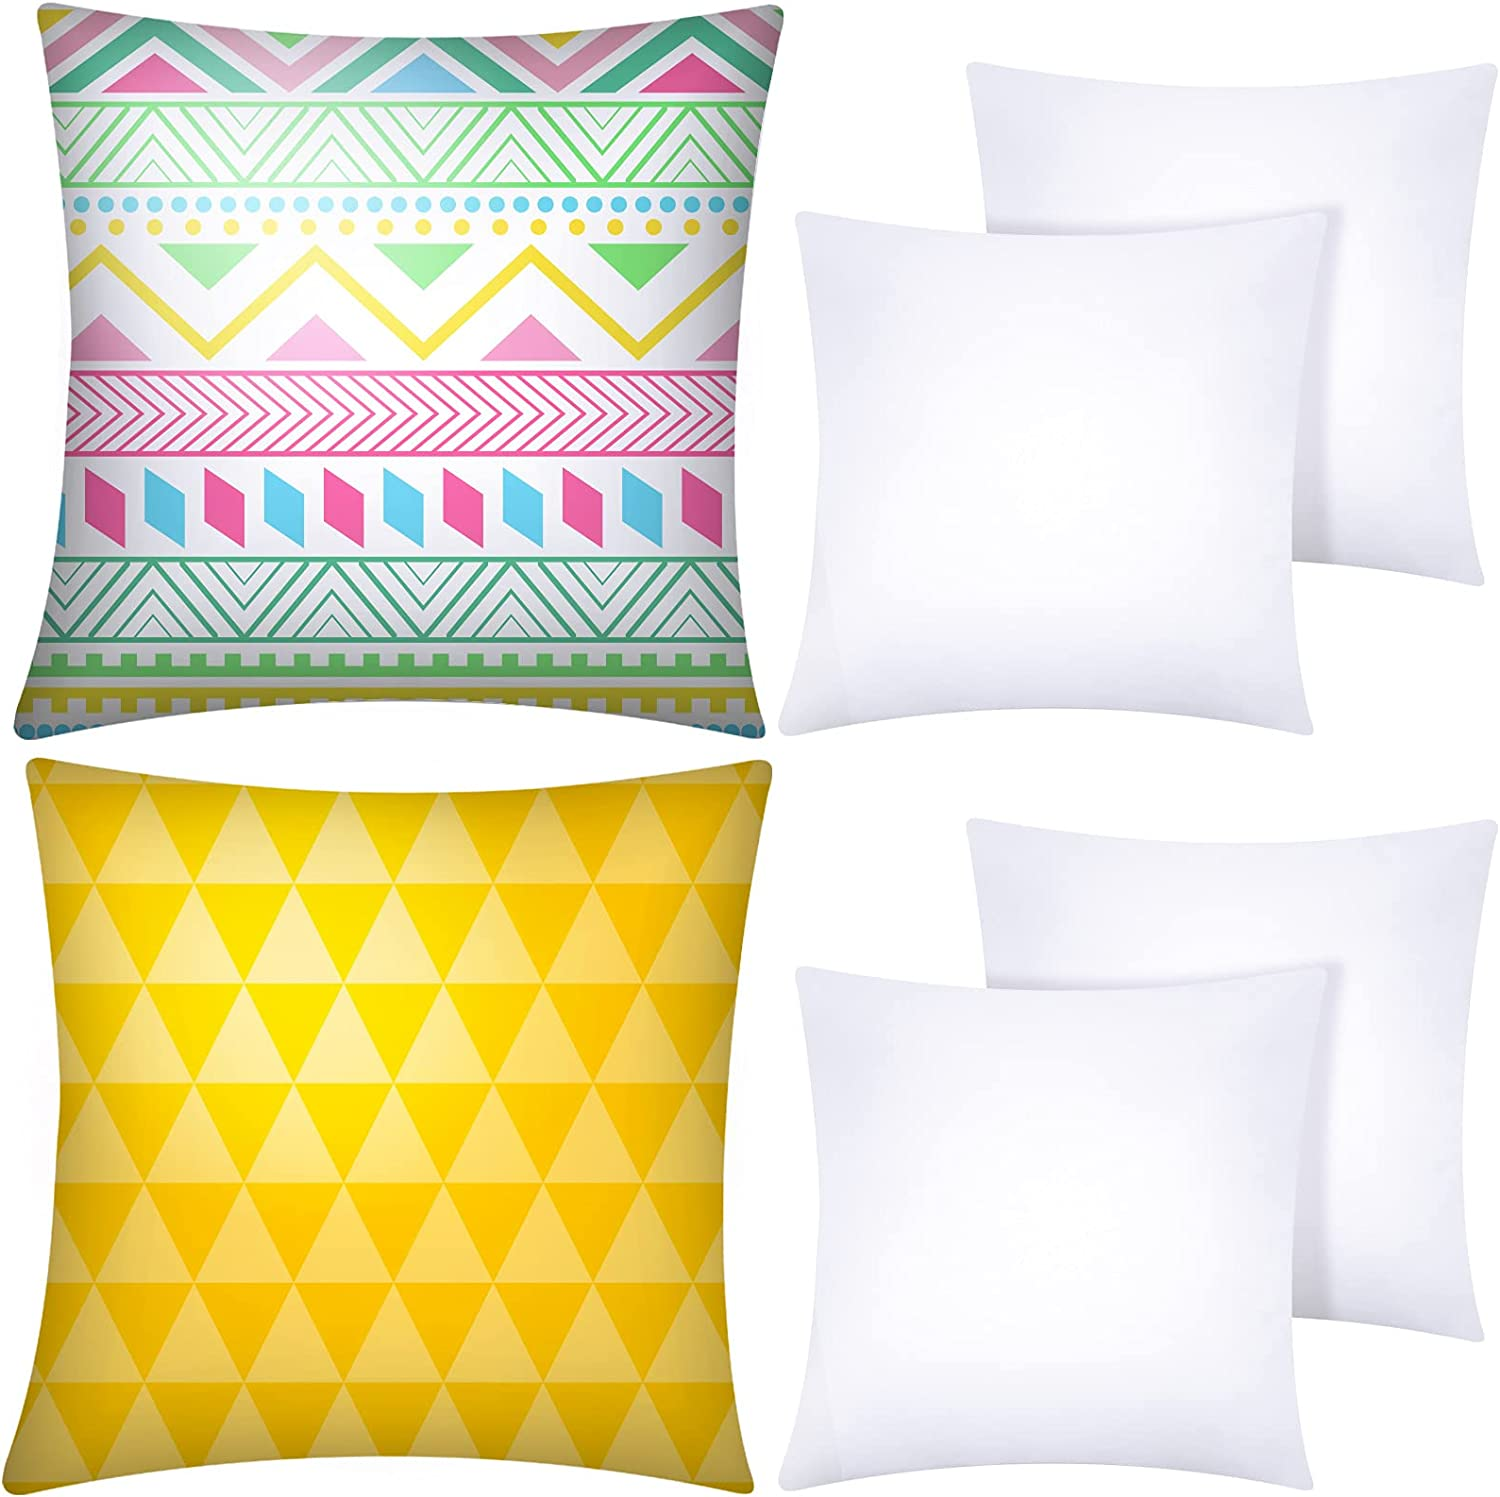 Aneco 6 Finally resale start Pack Sublimation Pillow Super Special SALE held White Covers Blank Cushion Cases